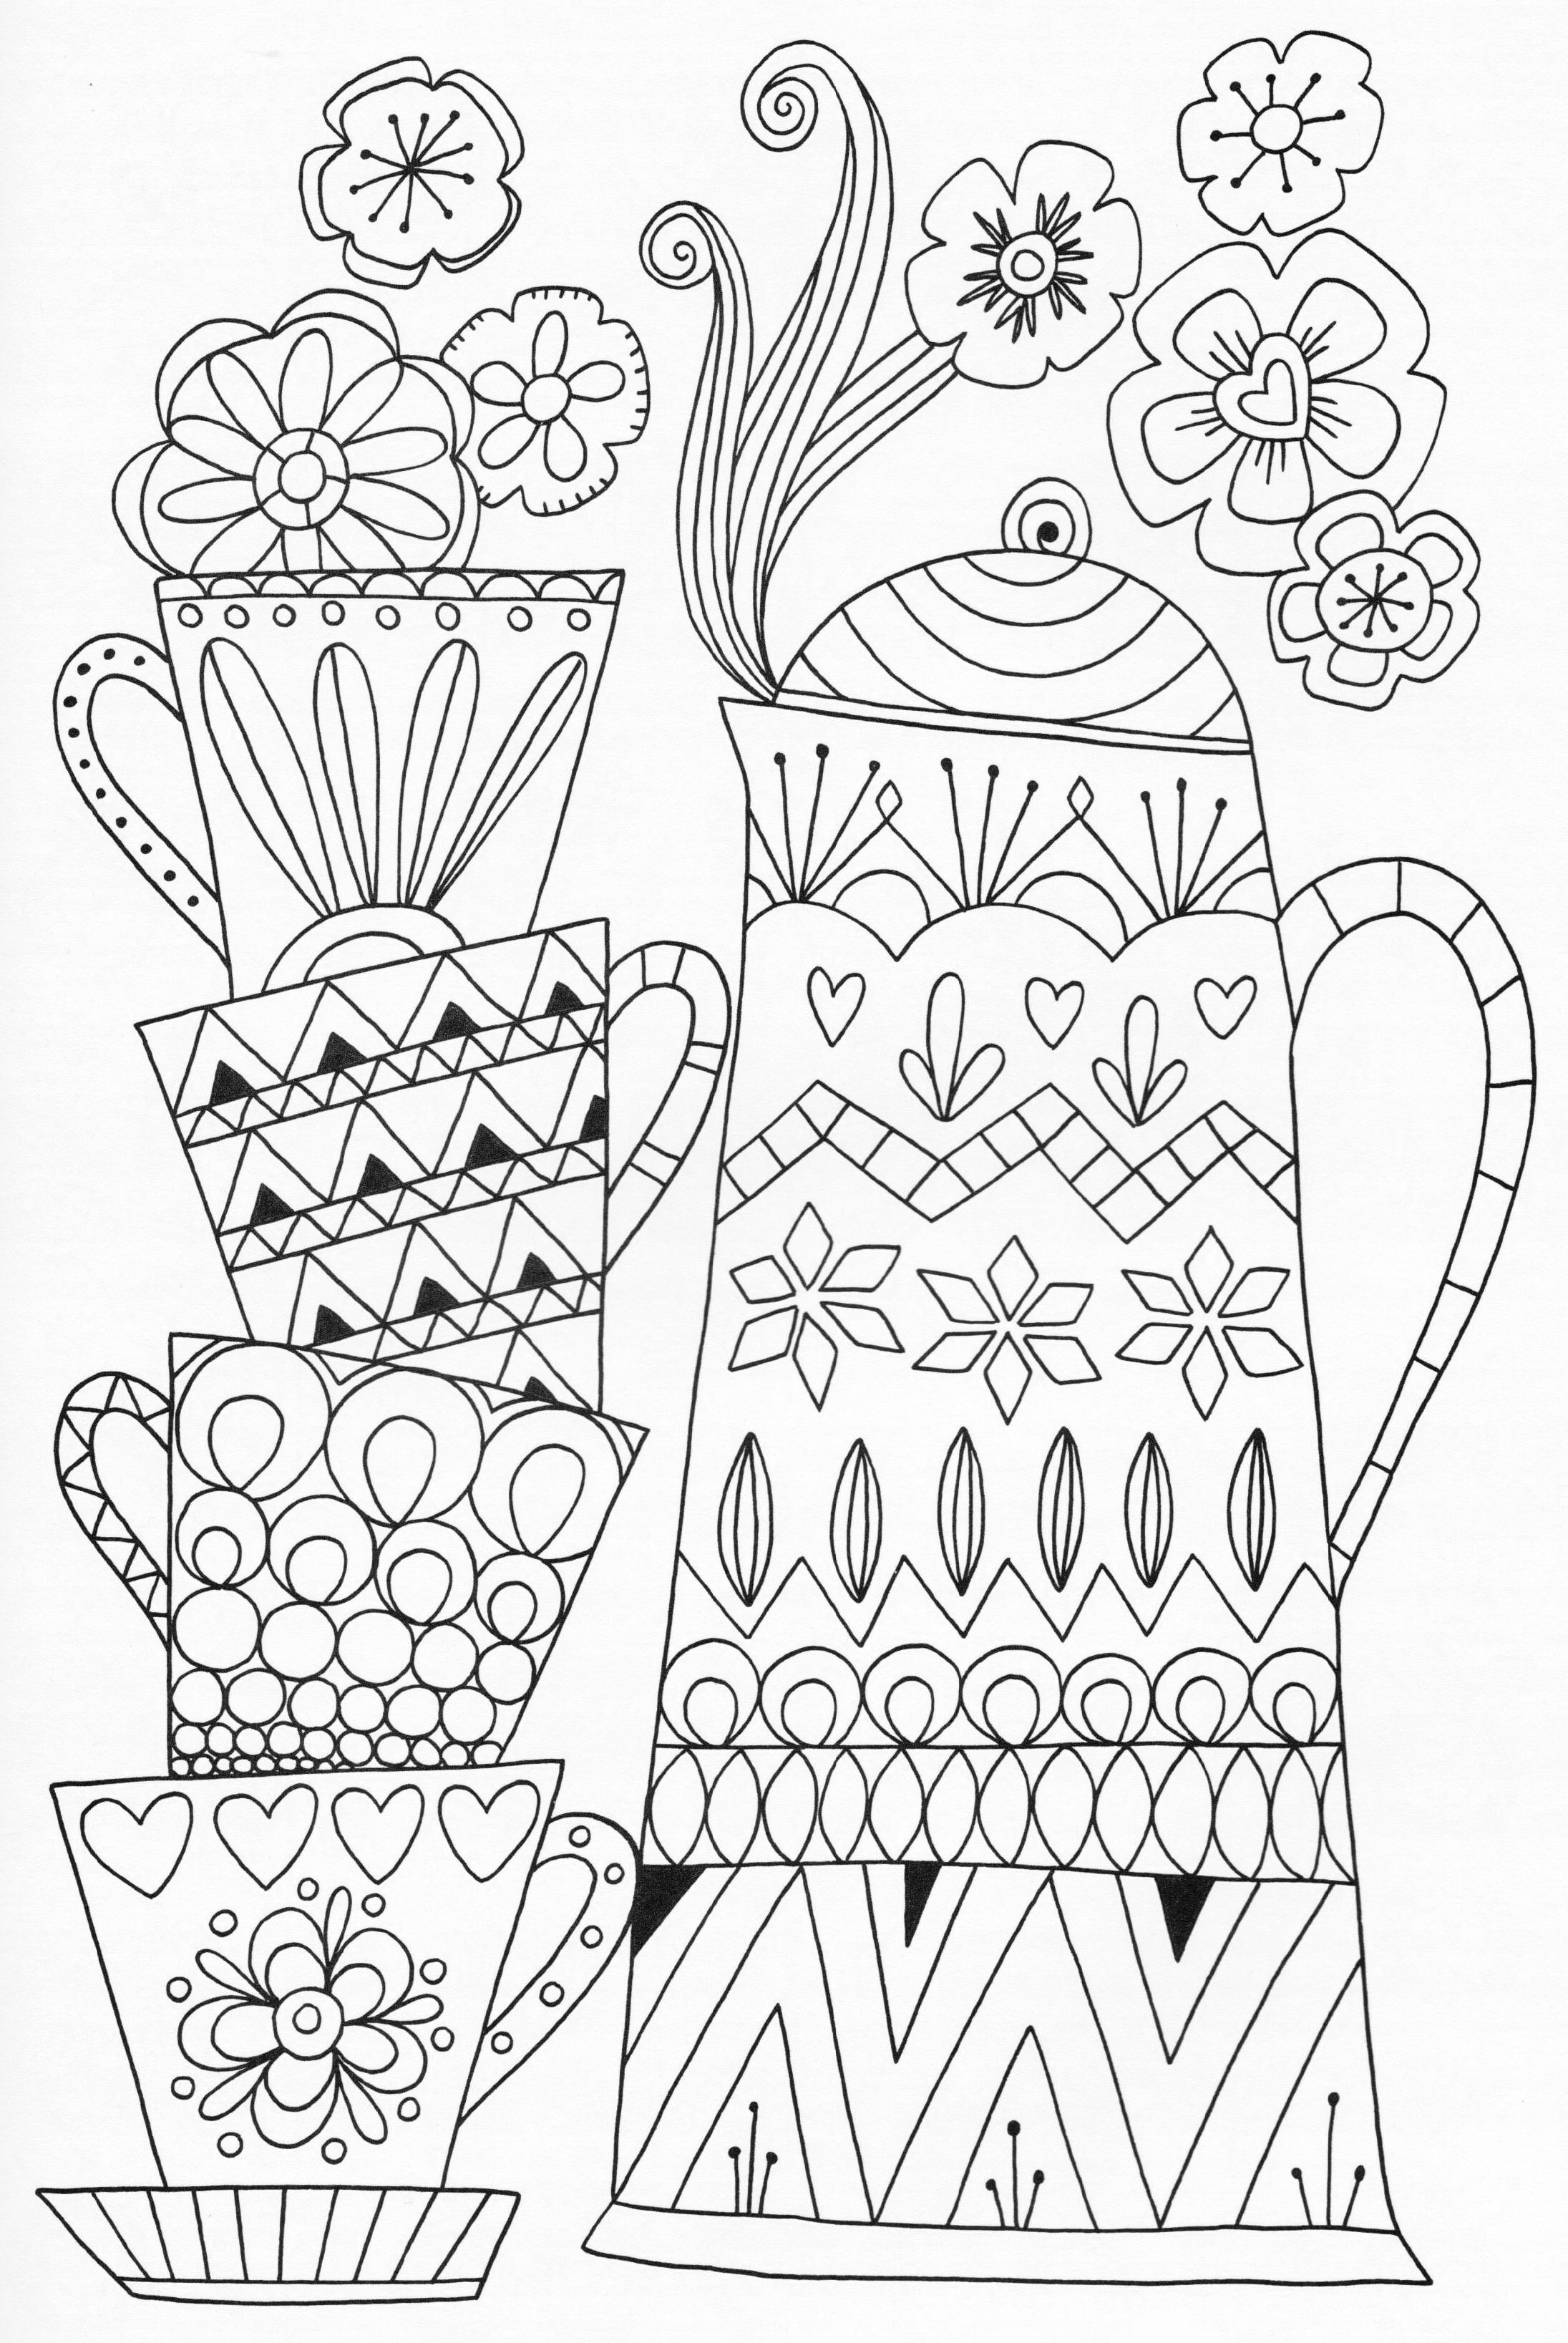 Image Result For Mary Engelbreit Coloring Pages Free Coloring Books Coloring Pages Embroidery Patterns